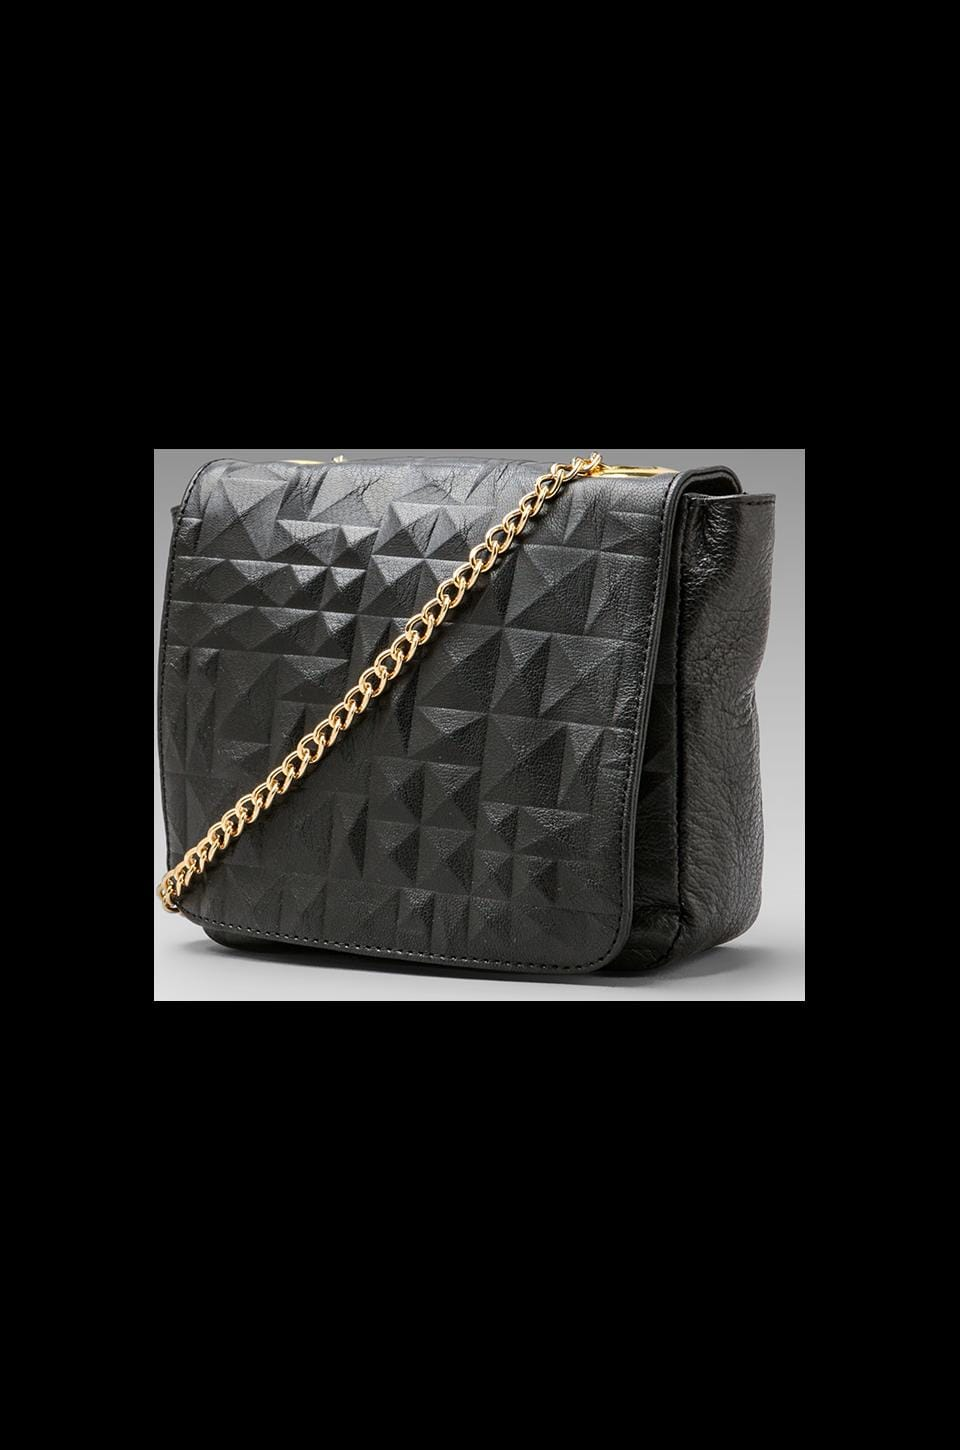 CC Skye Bizarro Crossbody in Black